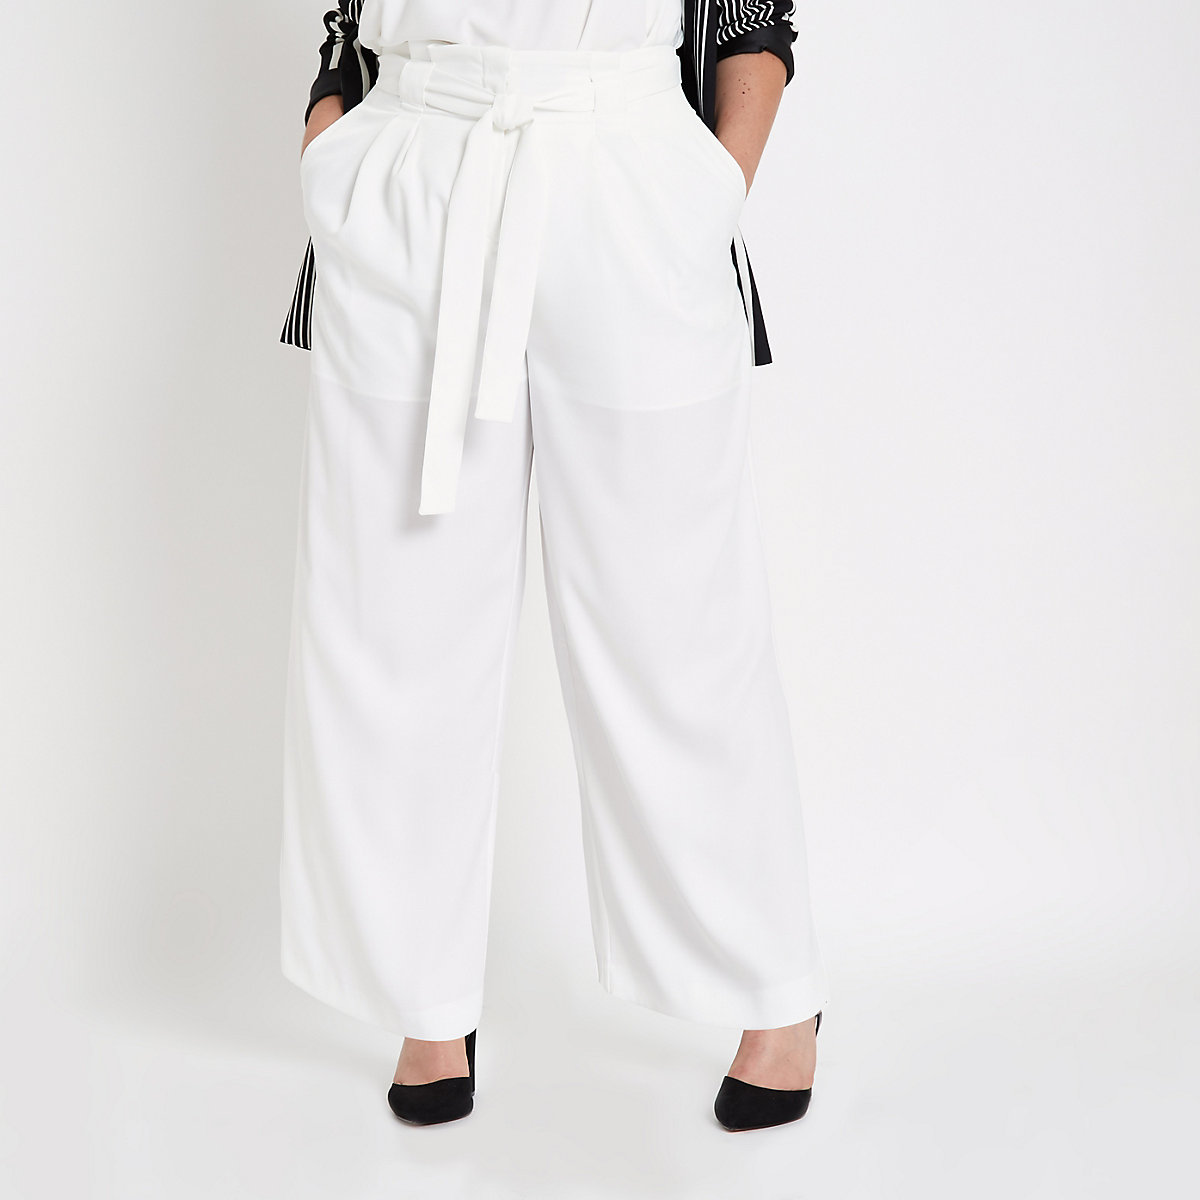 bbddd68754971 Plus white paperbag wide leg trousers - Wide Leg Trousers - Trousers - women